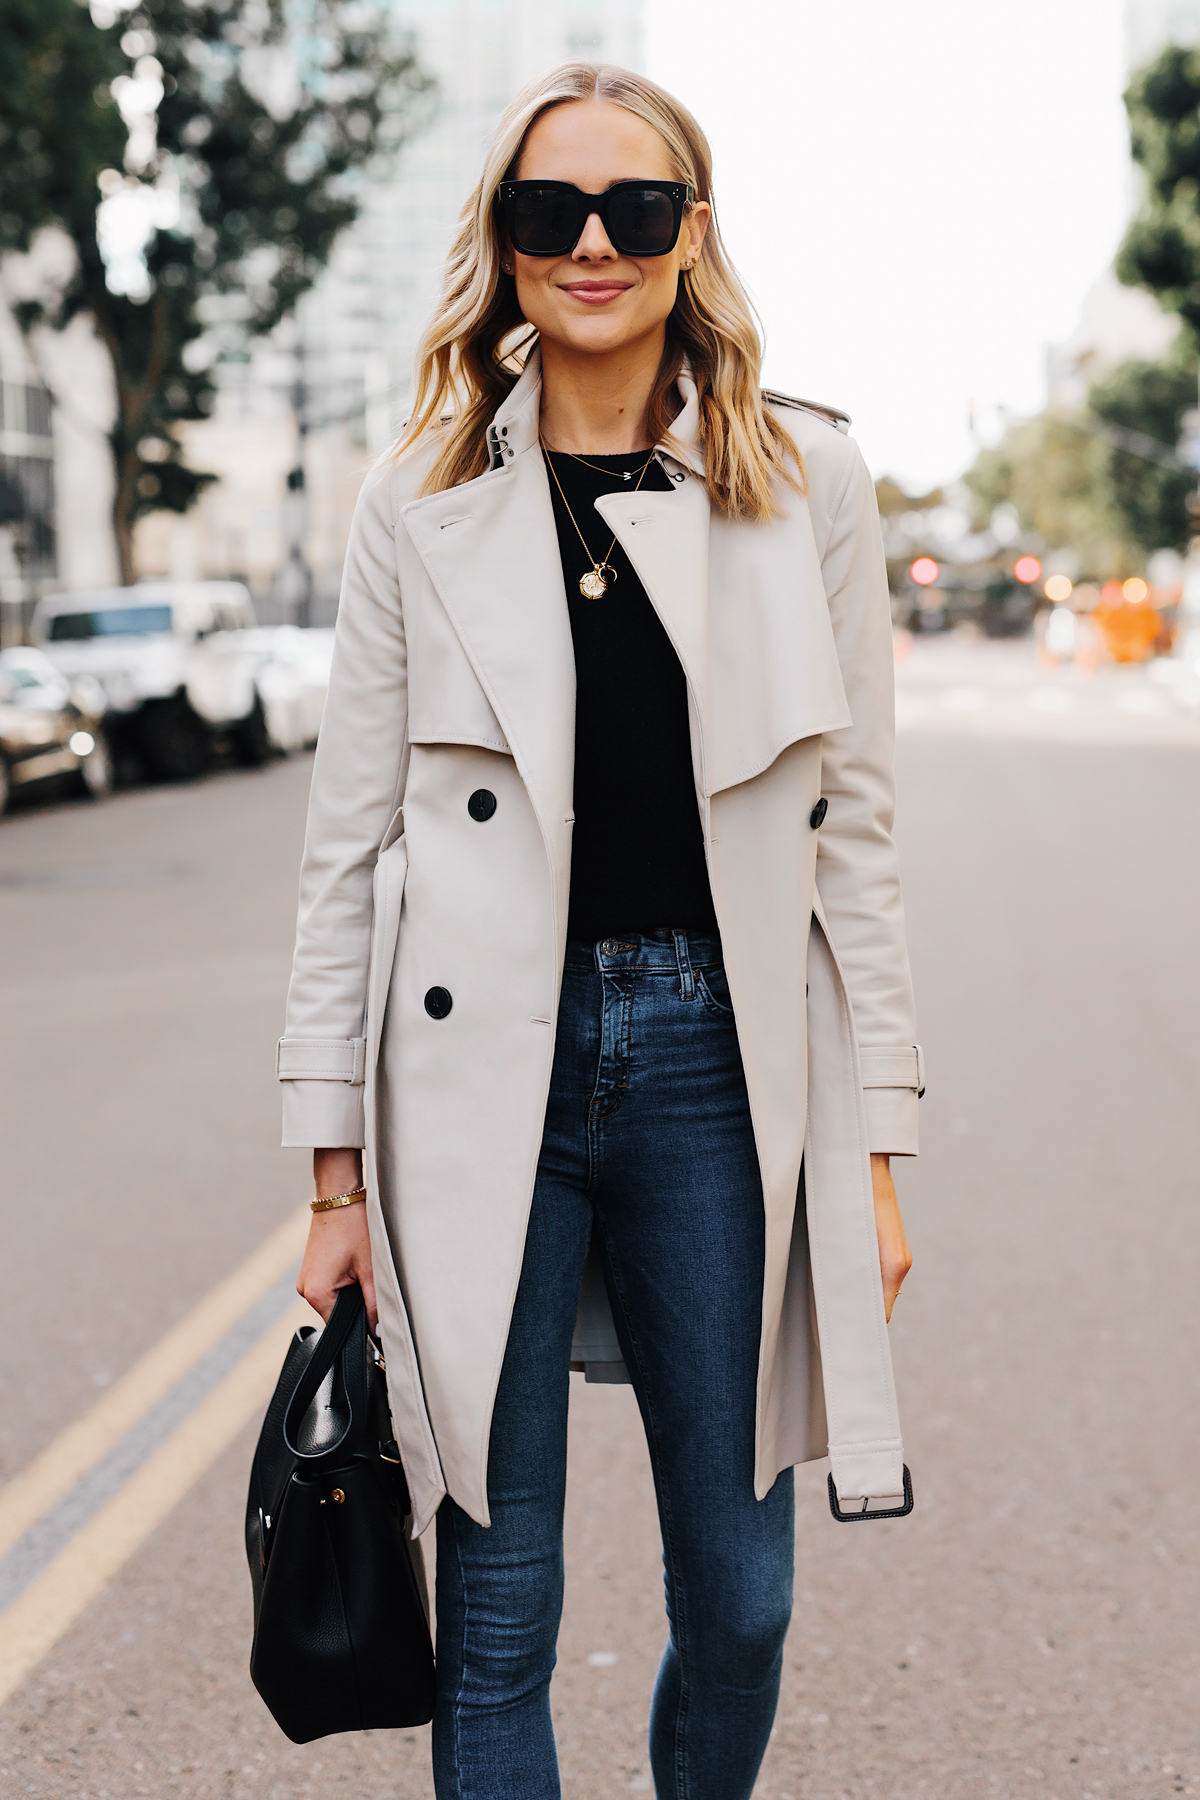 Blonde Woman Wearing Club Monaco Trench Coat Black Sweater Denim Skinny Jeans Black Handbag Fashion Jackson San Diego Fashion Blogger Street Style